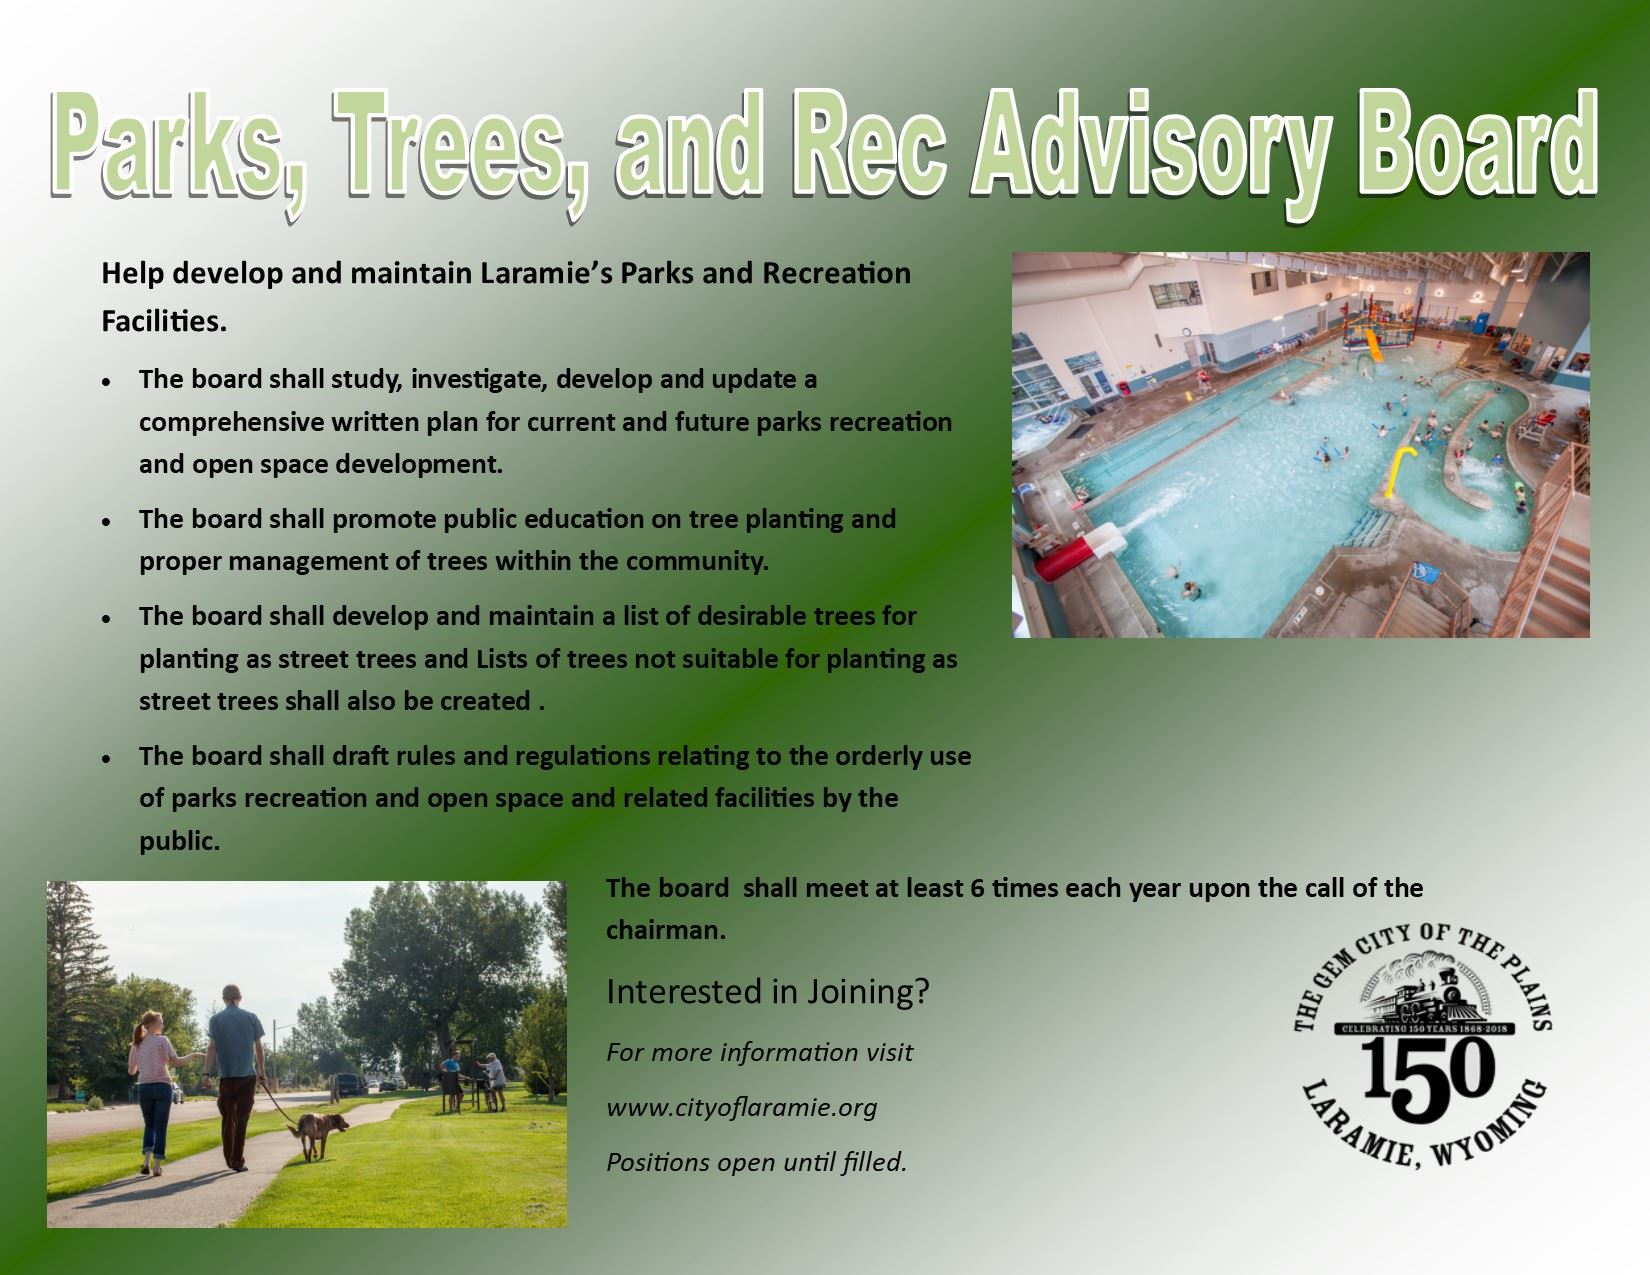 Parks, Trees, and Rec Advisory Board Ad 11-27-18